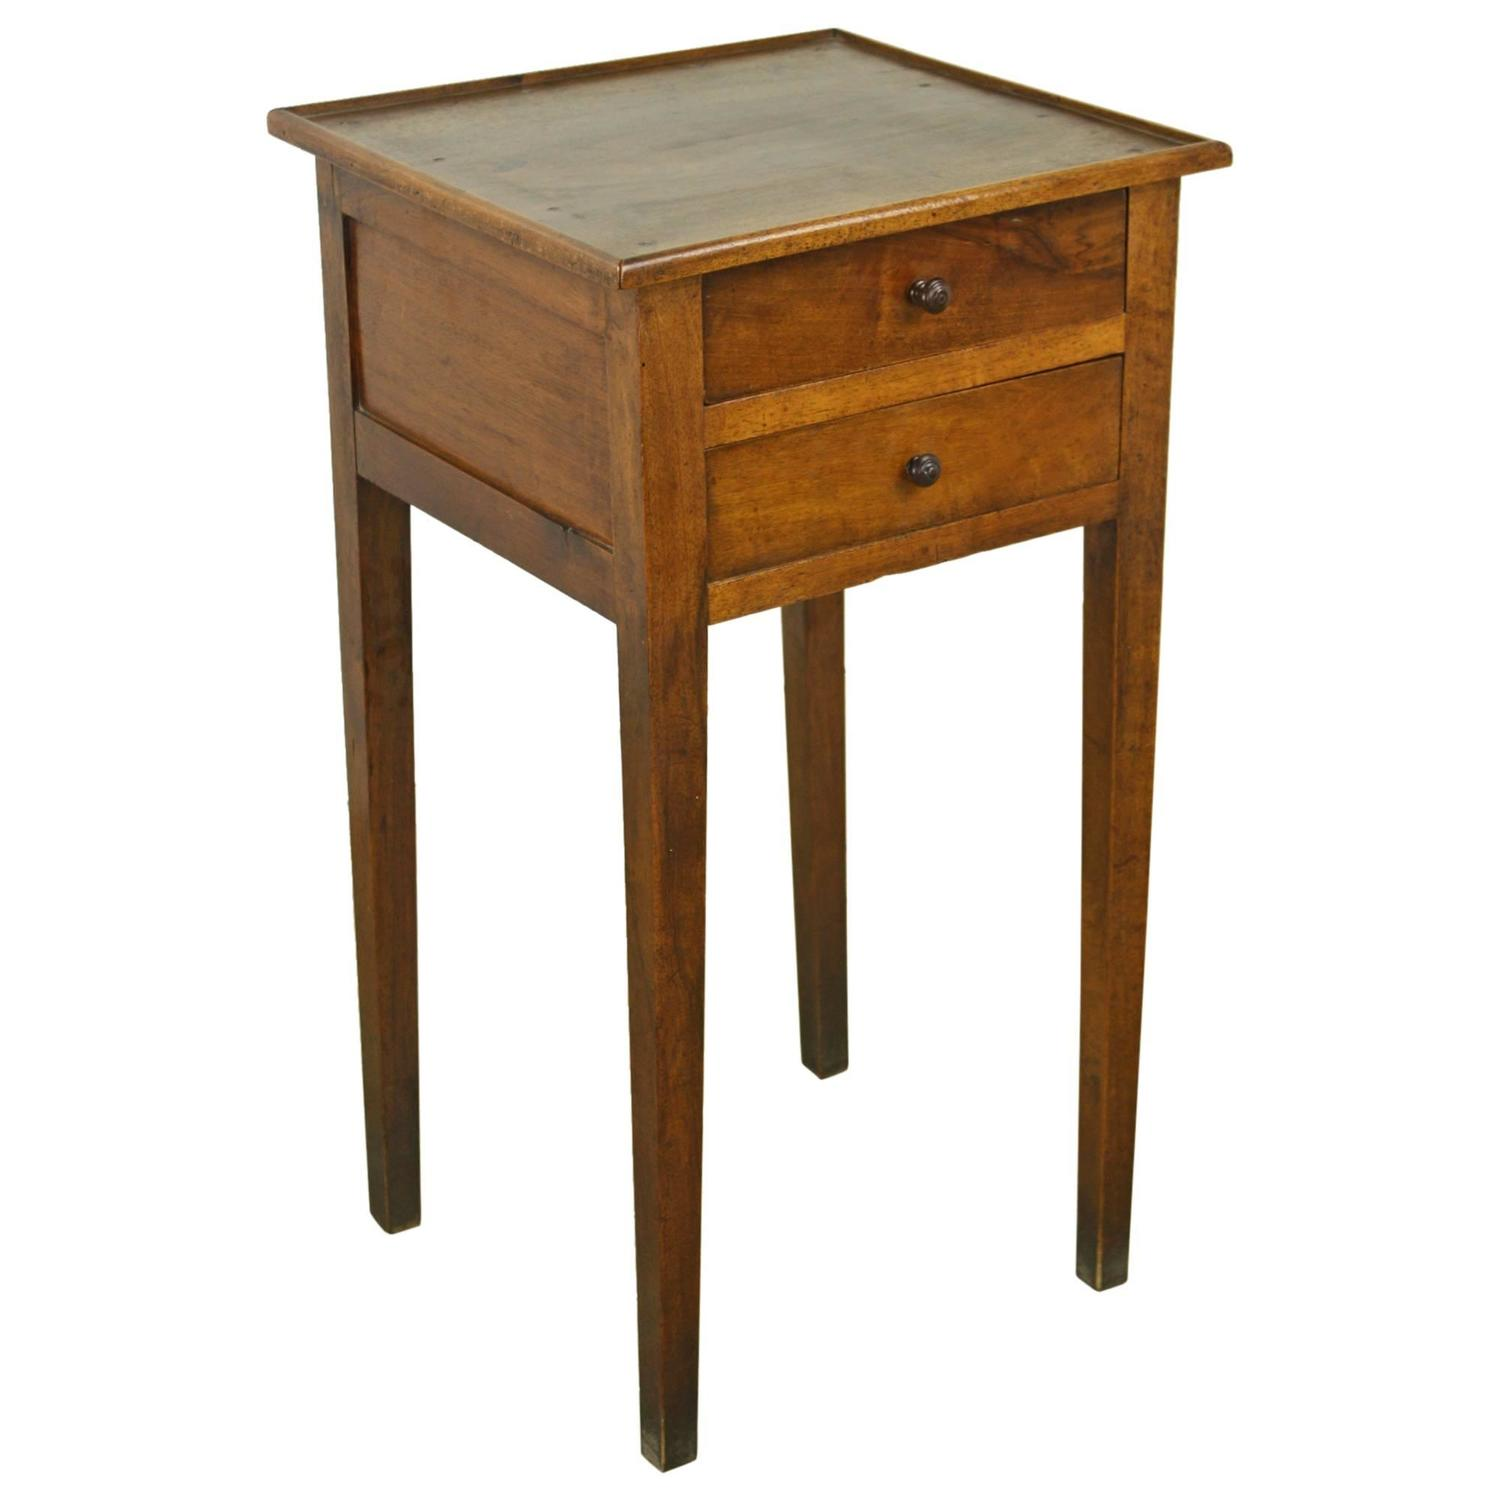 Antique french walnut side table at 1stdibs for Table in french